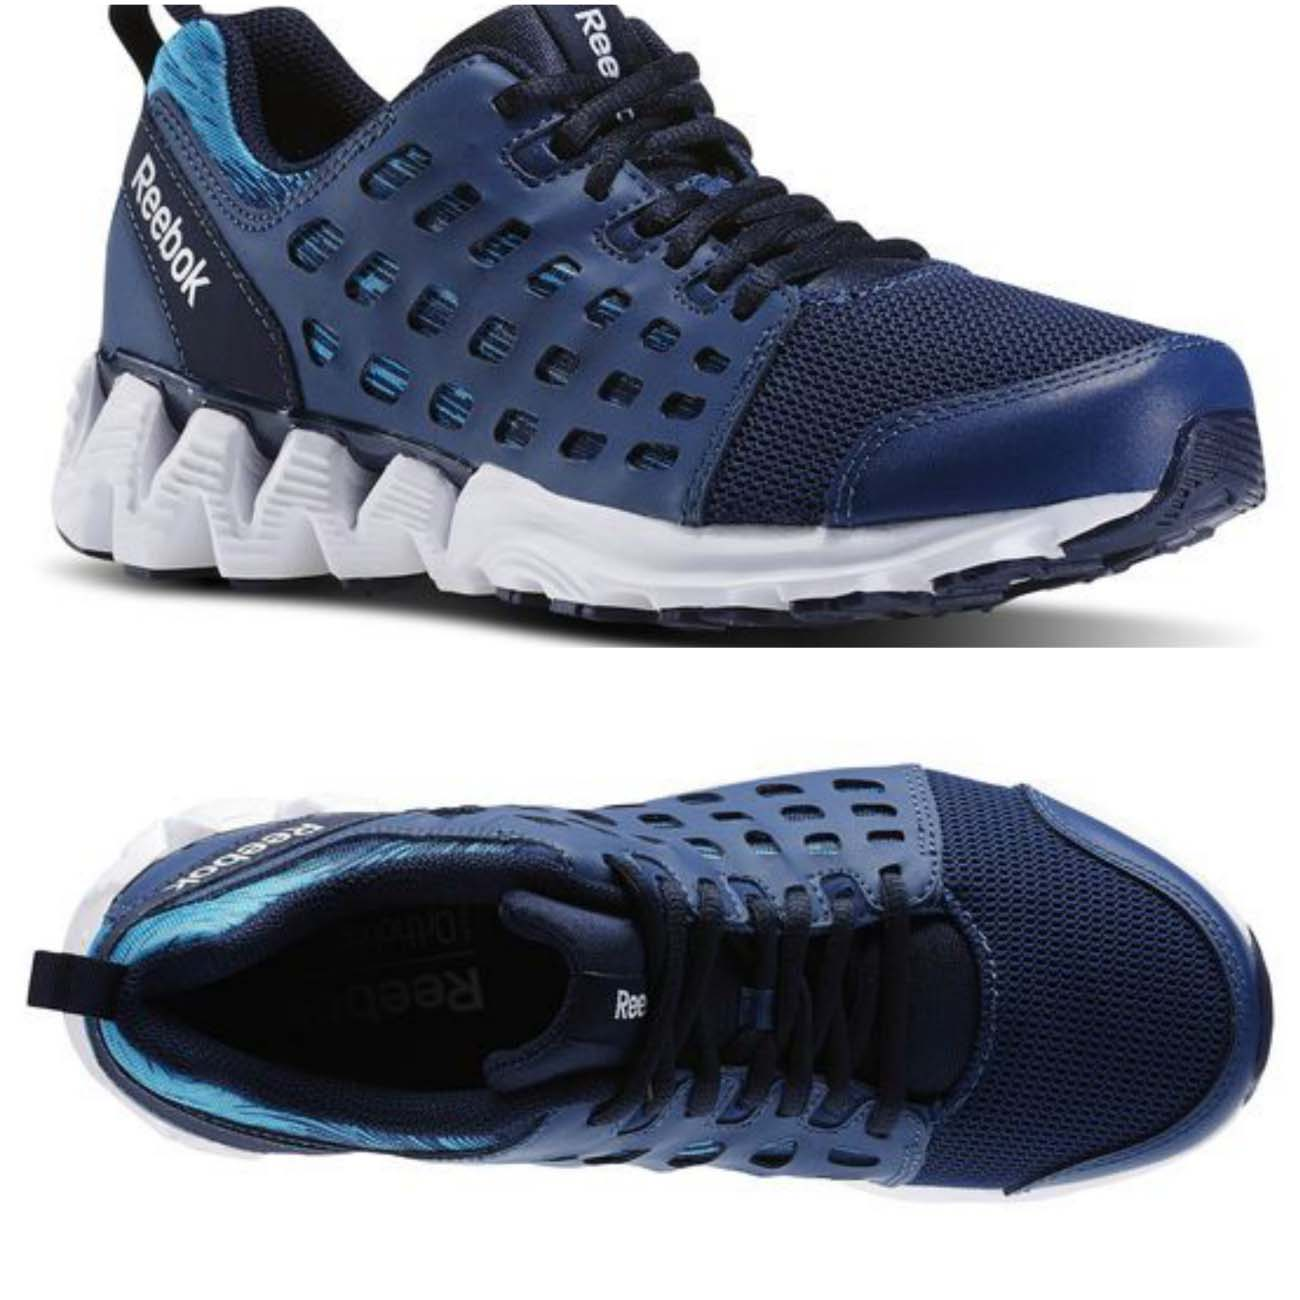 Reebok Sneakers For 28 Images Reebok Running Shoes